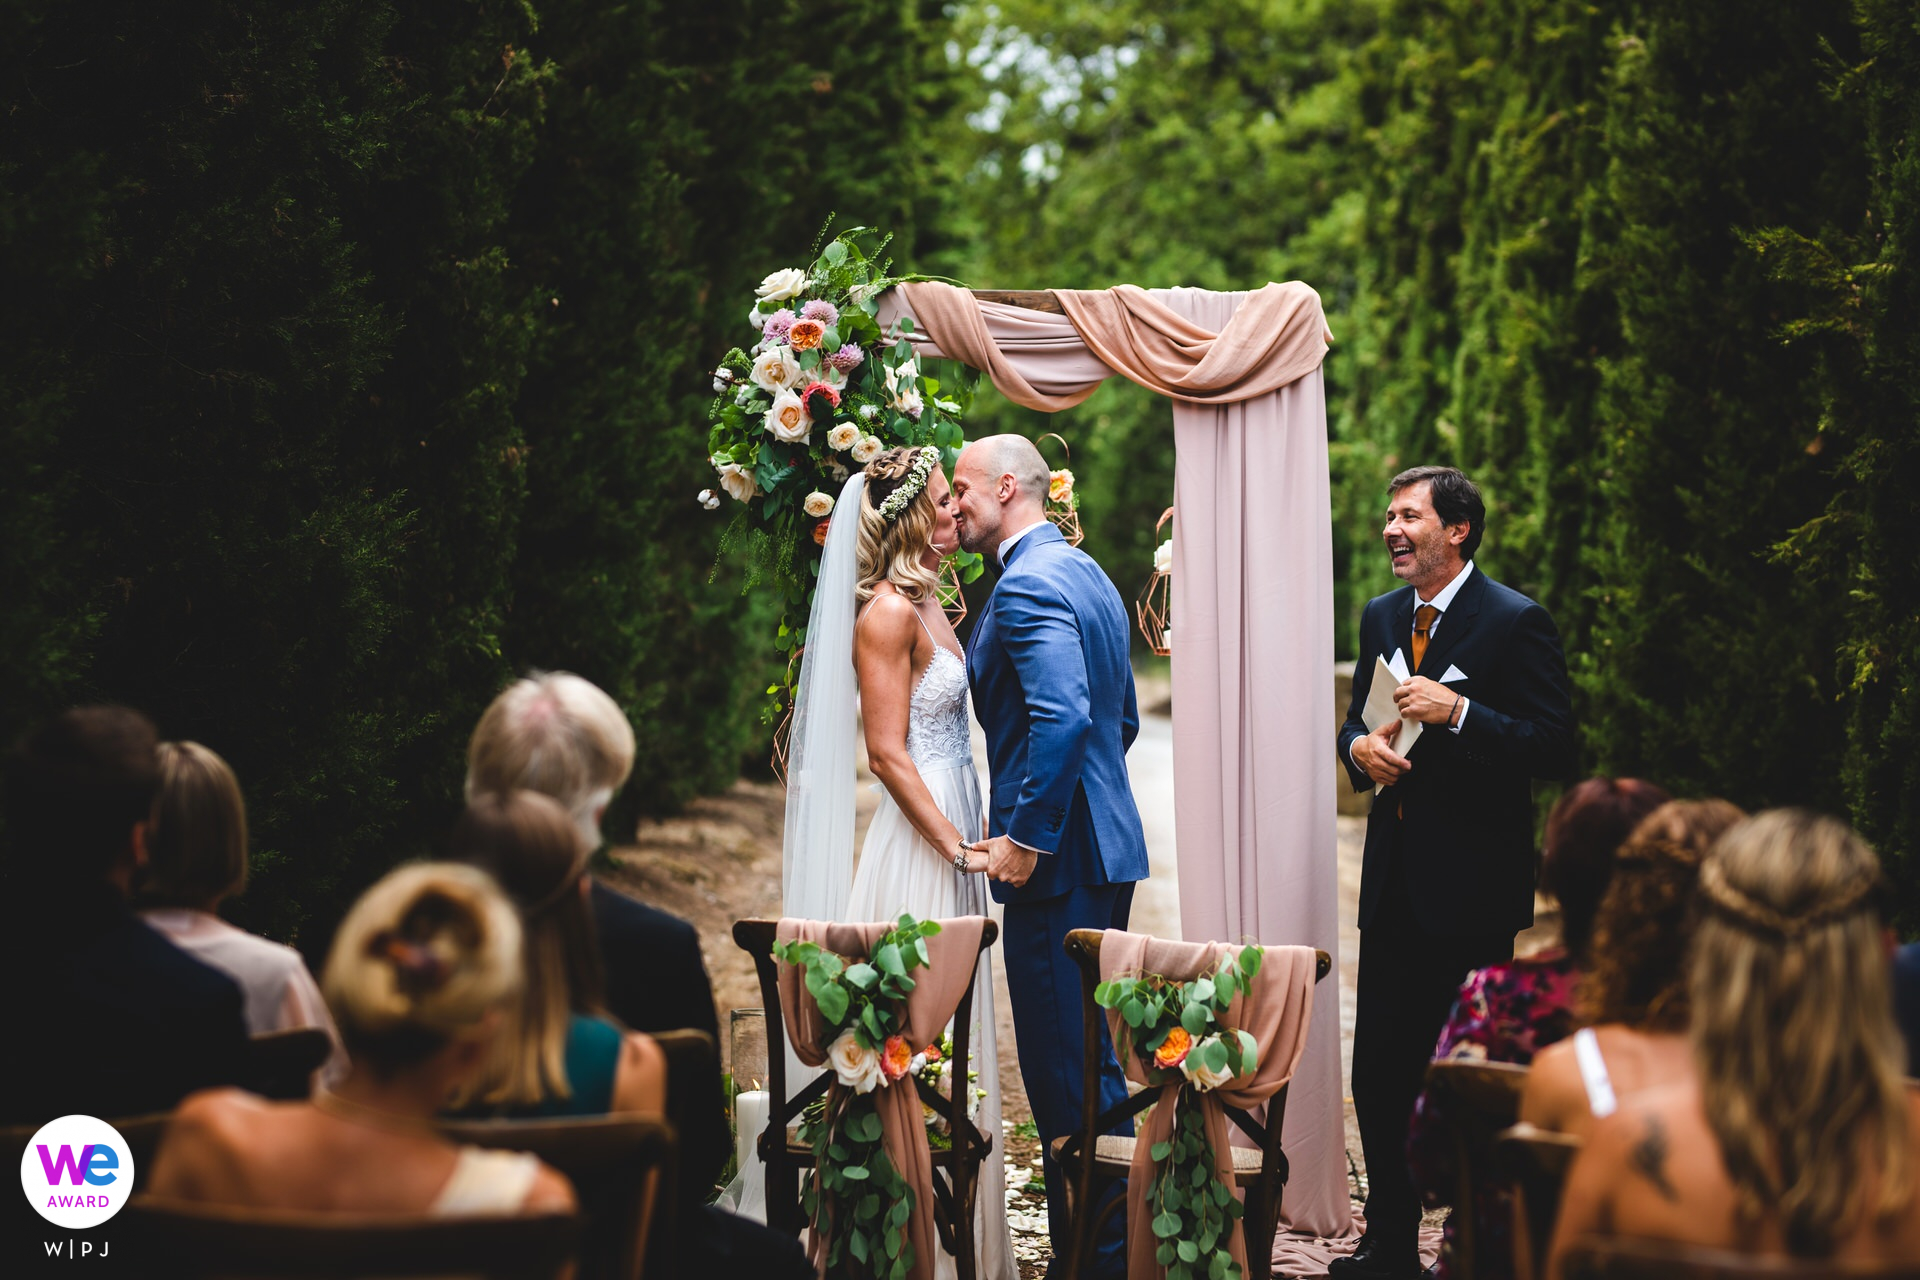 Tuscany Elopement Picture | The bride and groom chose to have their small, private ceremony among tall, green shrubbery, affording them the intimacy to share that classic kiss after saying yes!